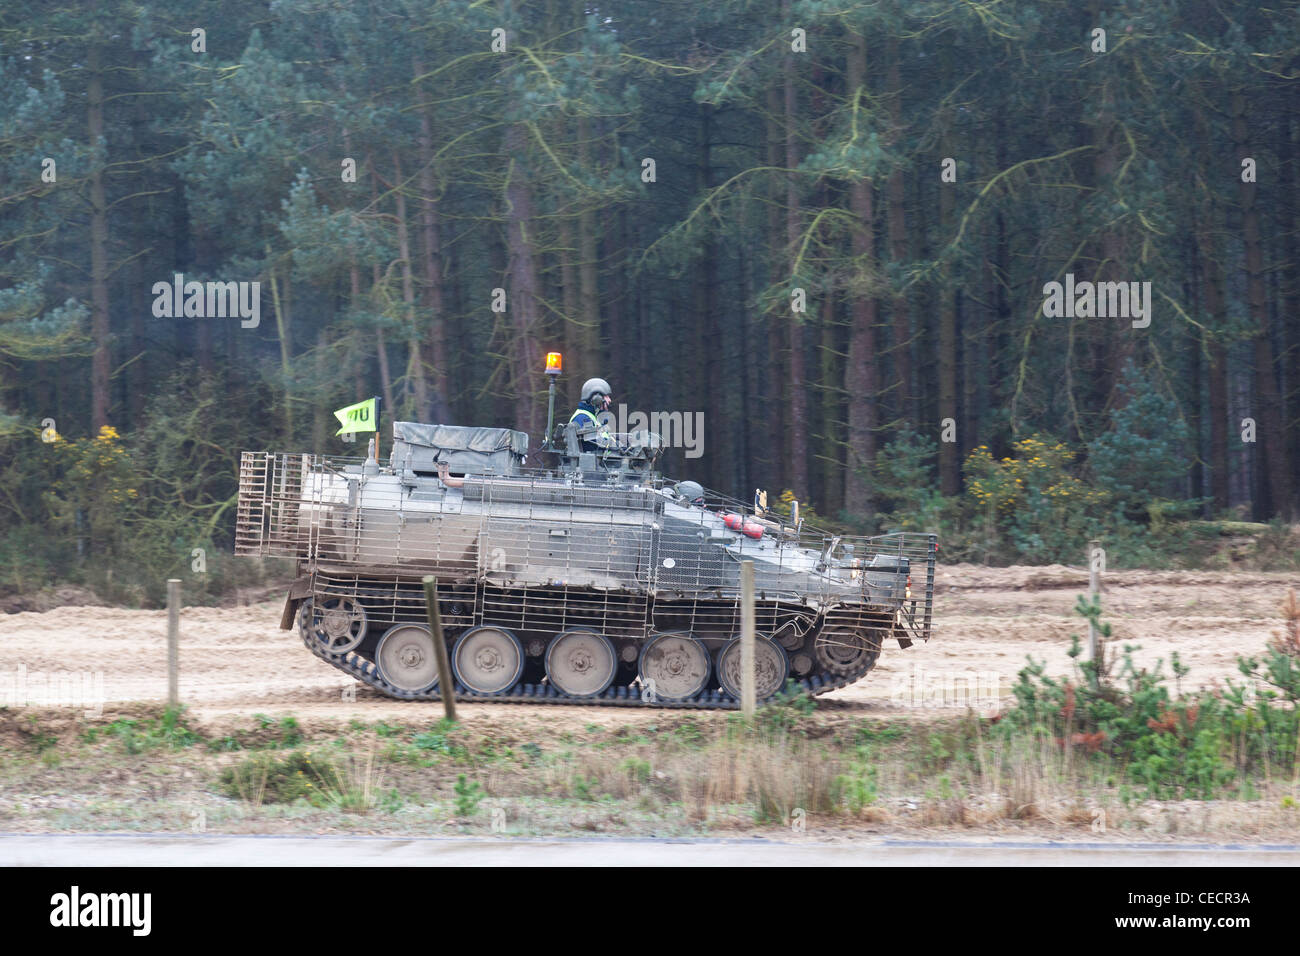 Tank during exercises on a training ground at Bovington Camp, Dorset, England. - Stock Image